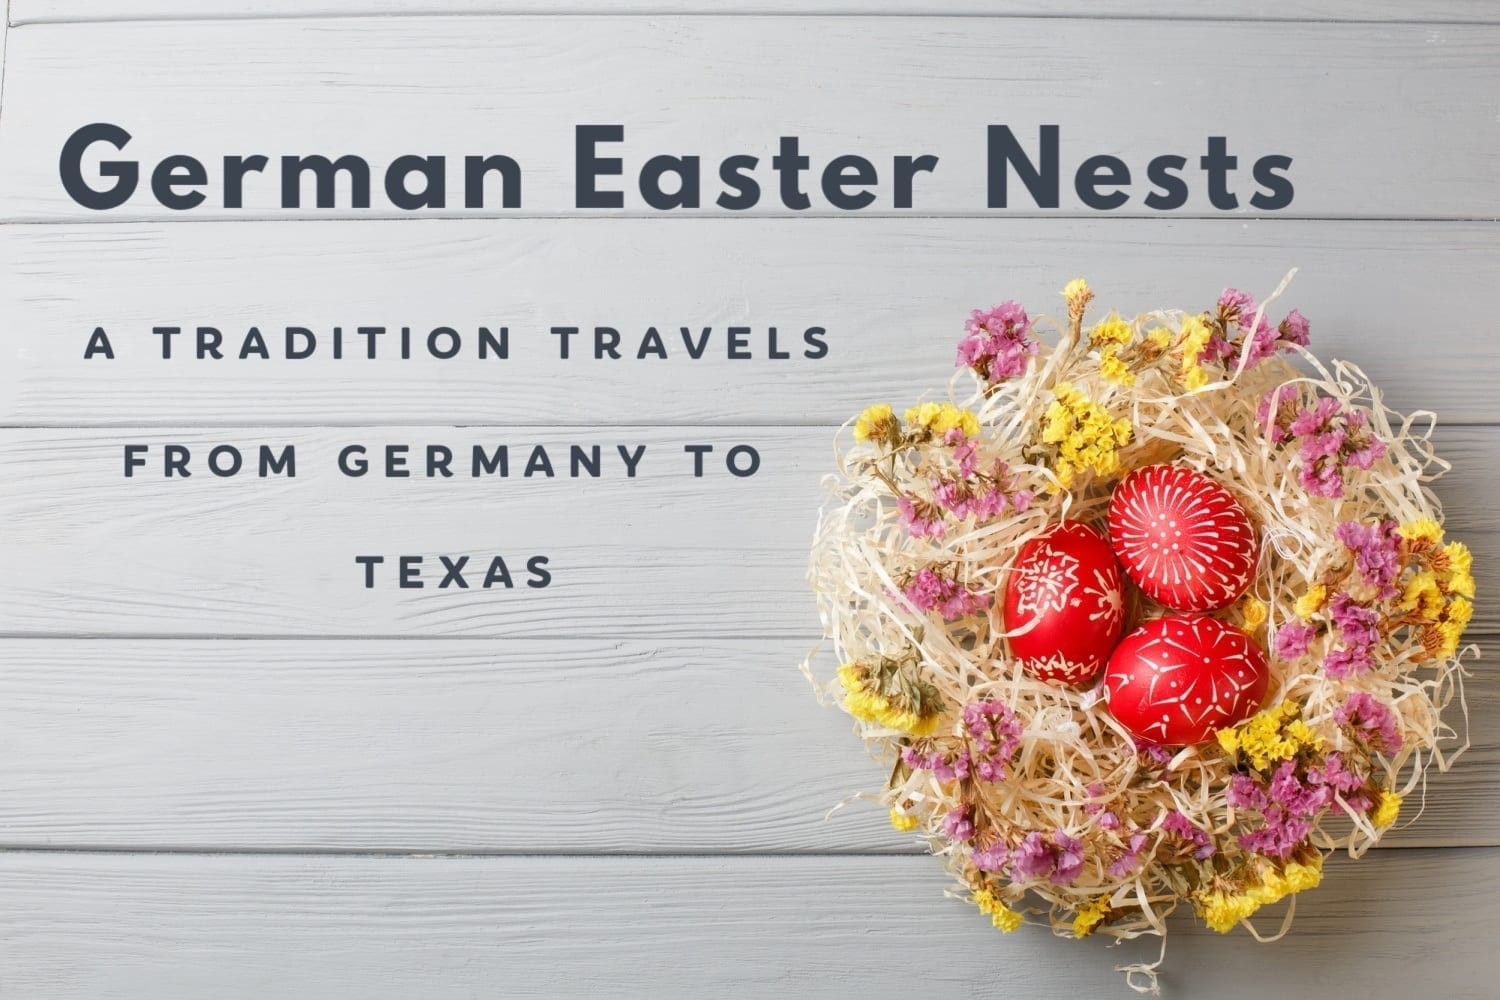 German Easter Nest Tradition- From Germany to Texas